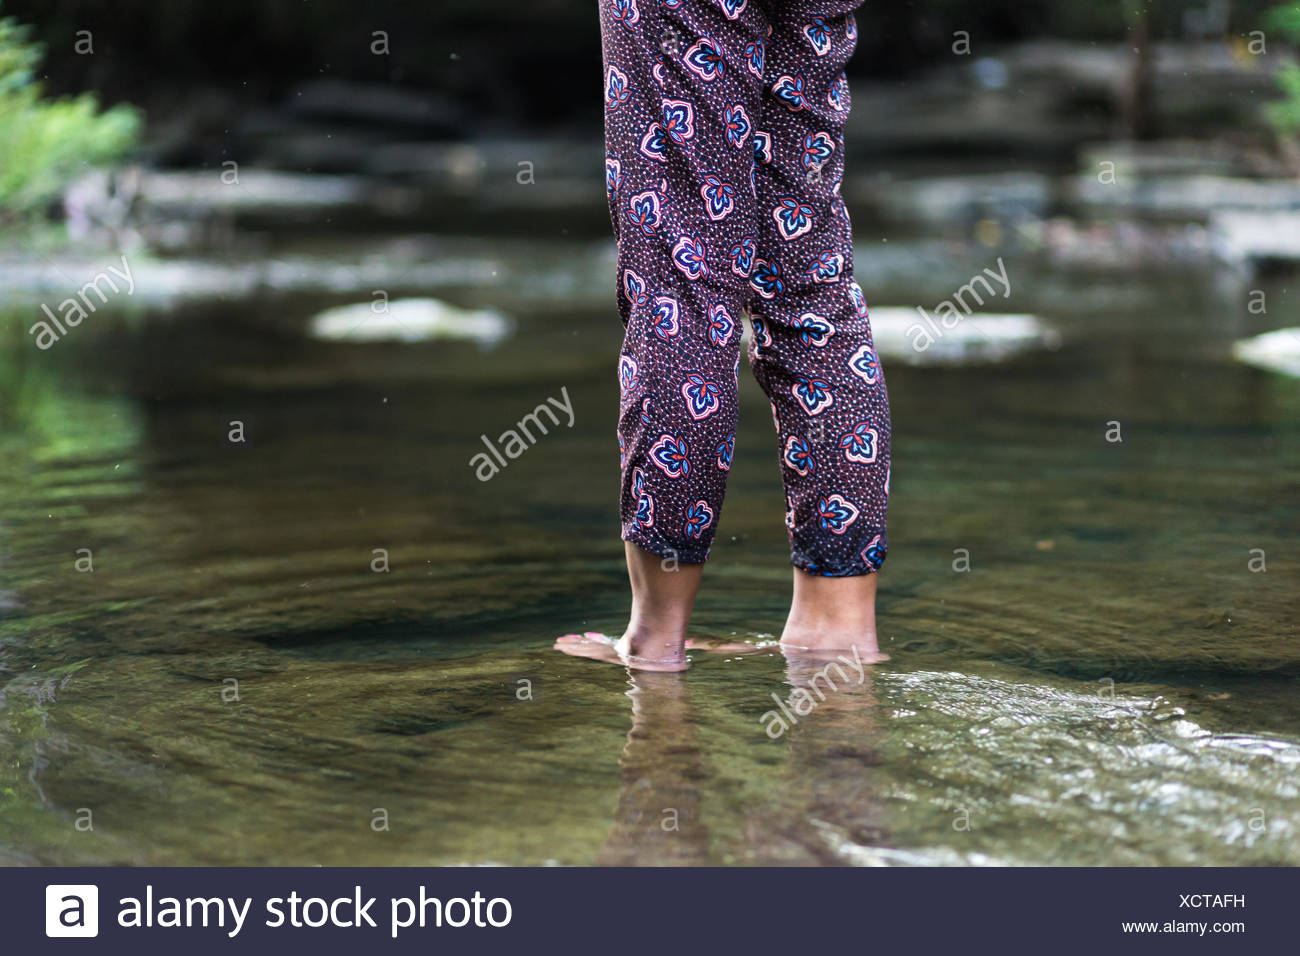 Dip your feet in whenever you can. - Stock Image